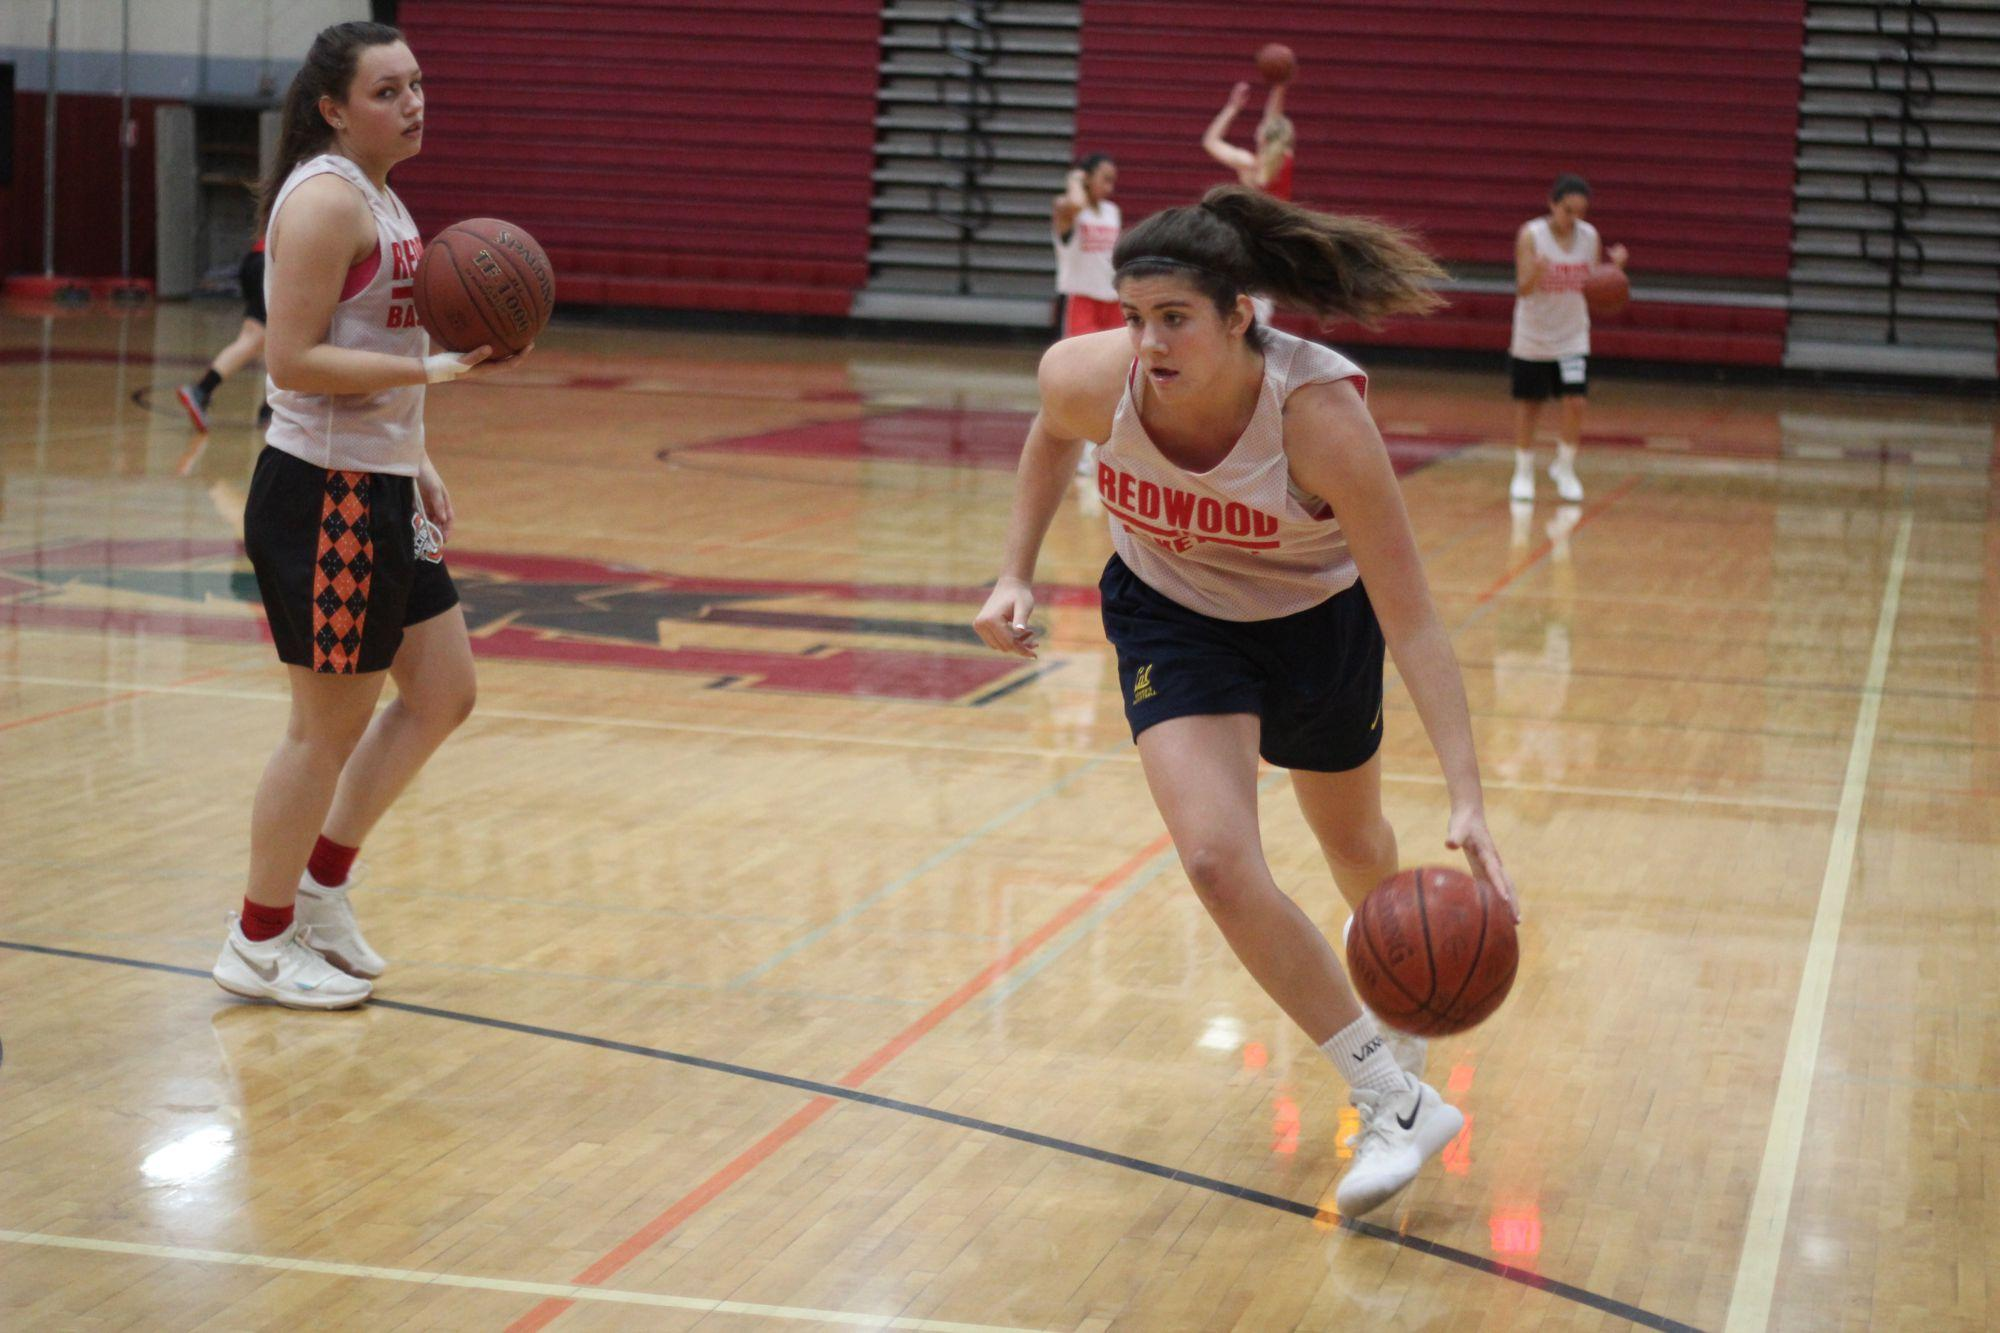 Horstmeyer legacy continues on the basketball court